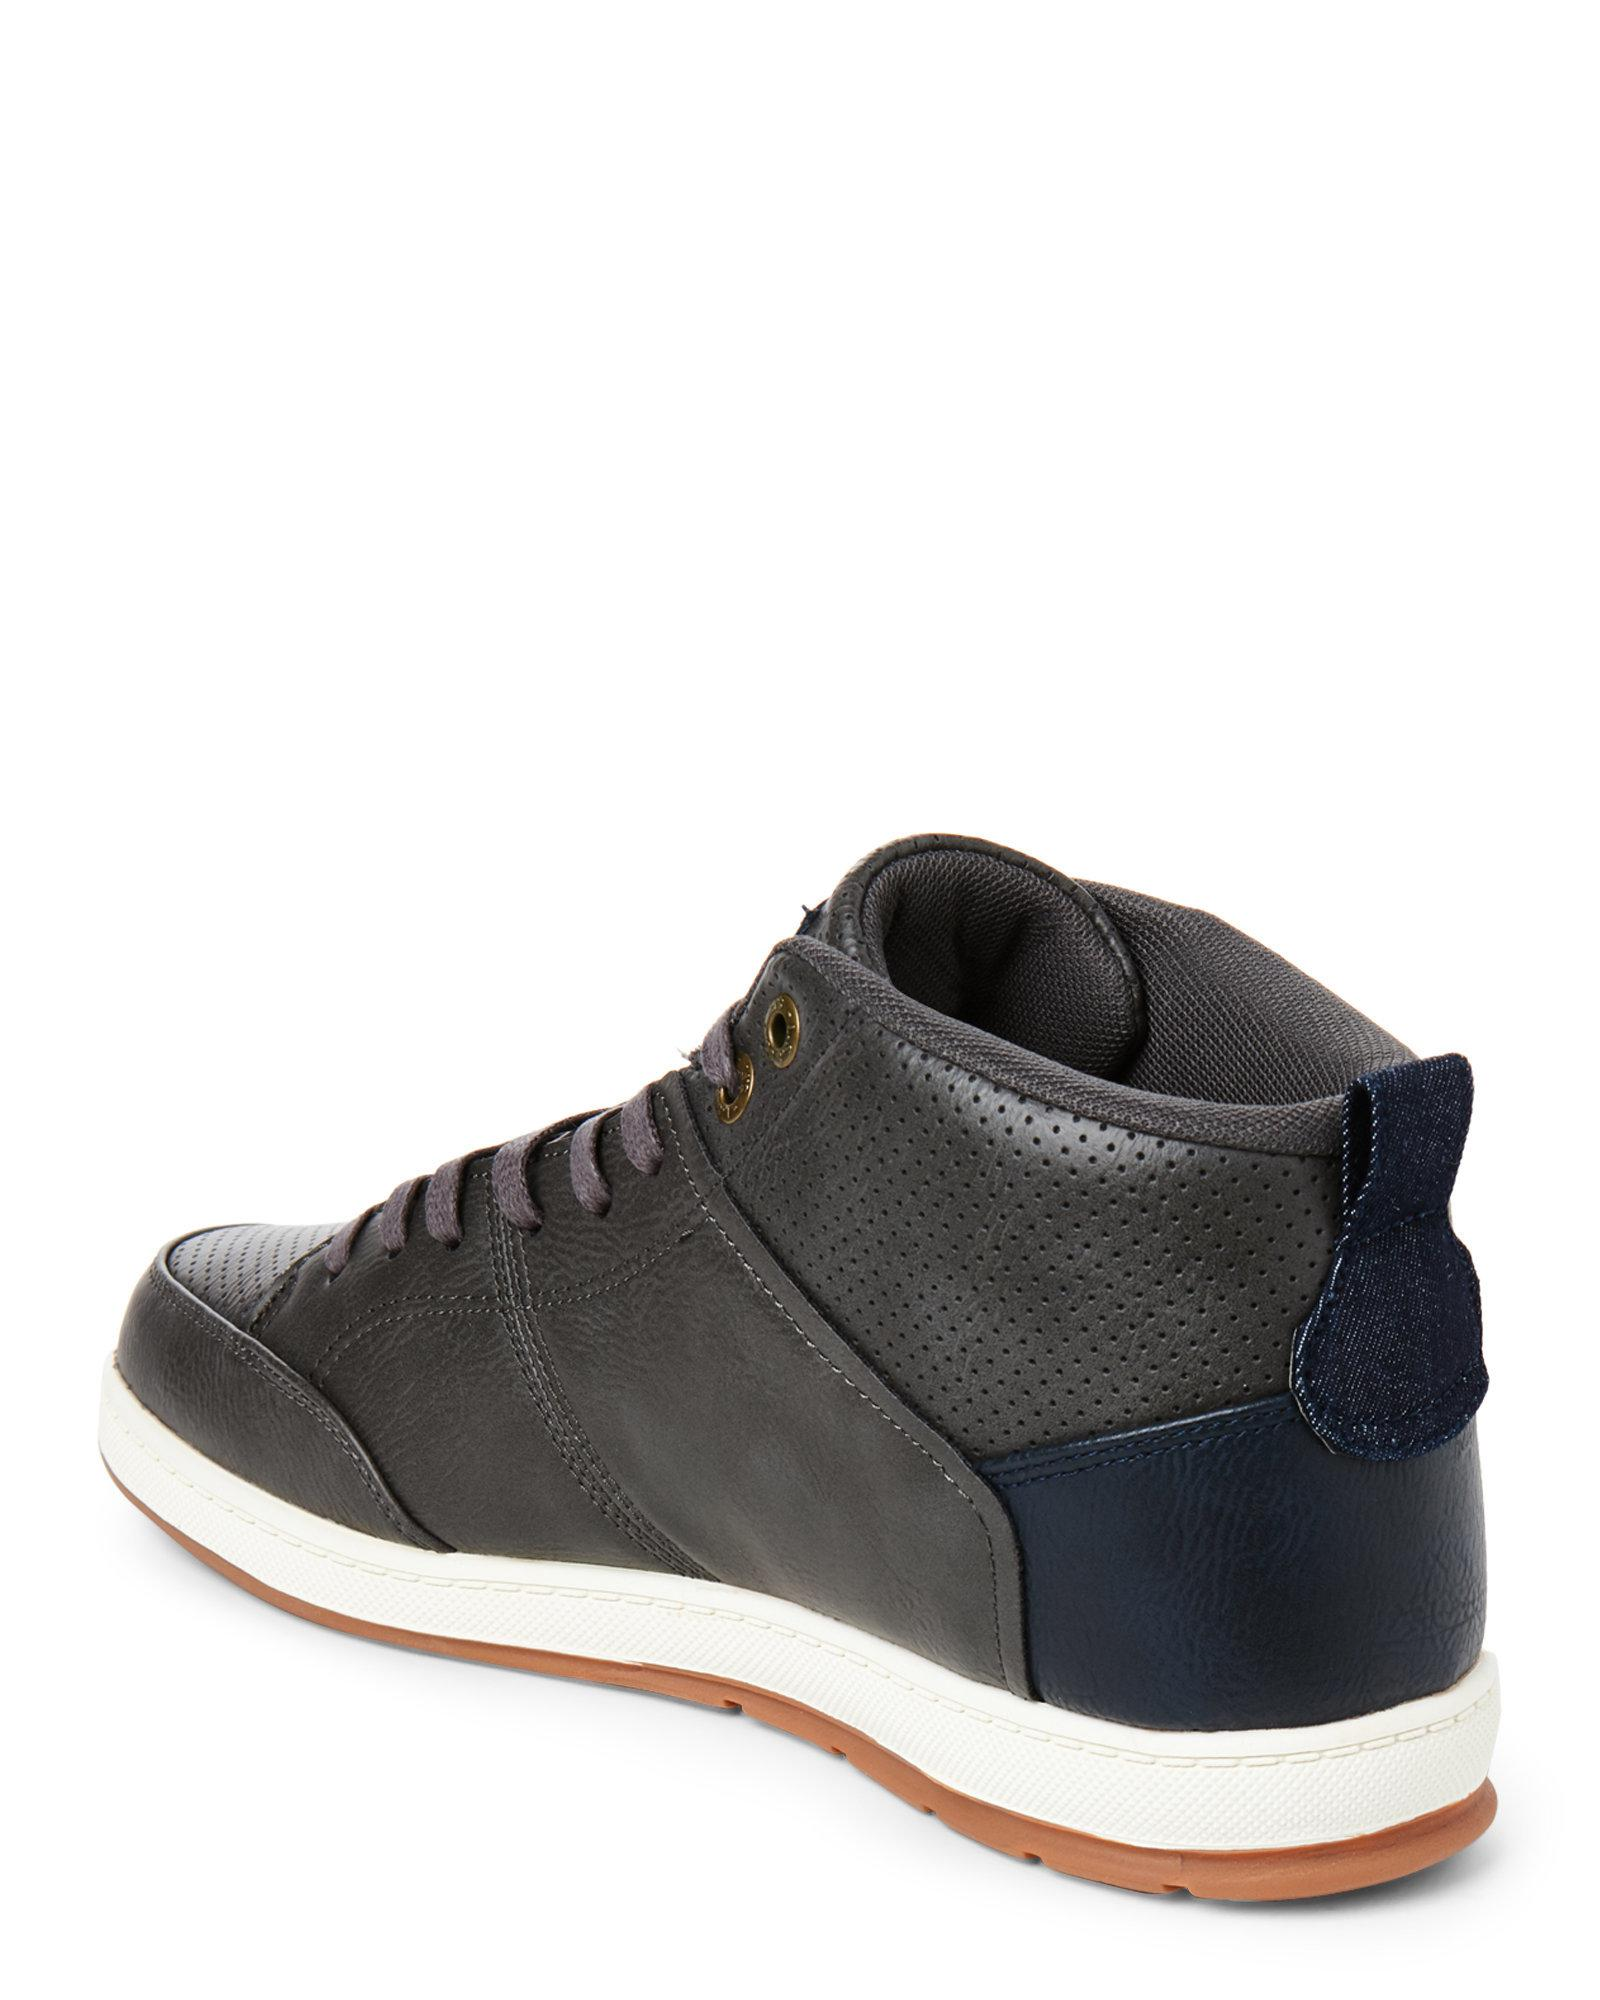 ... High Top Sneakers for Men - Lyst. View fullscreen